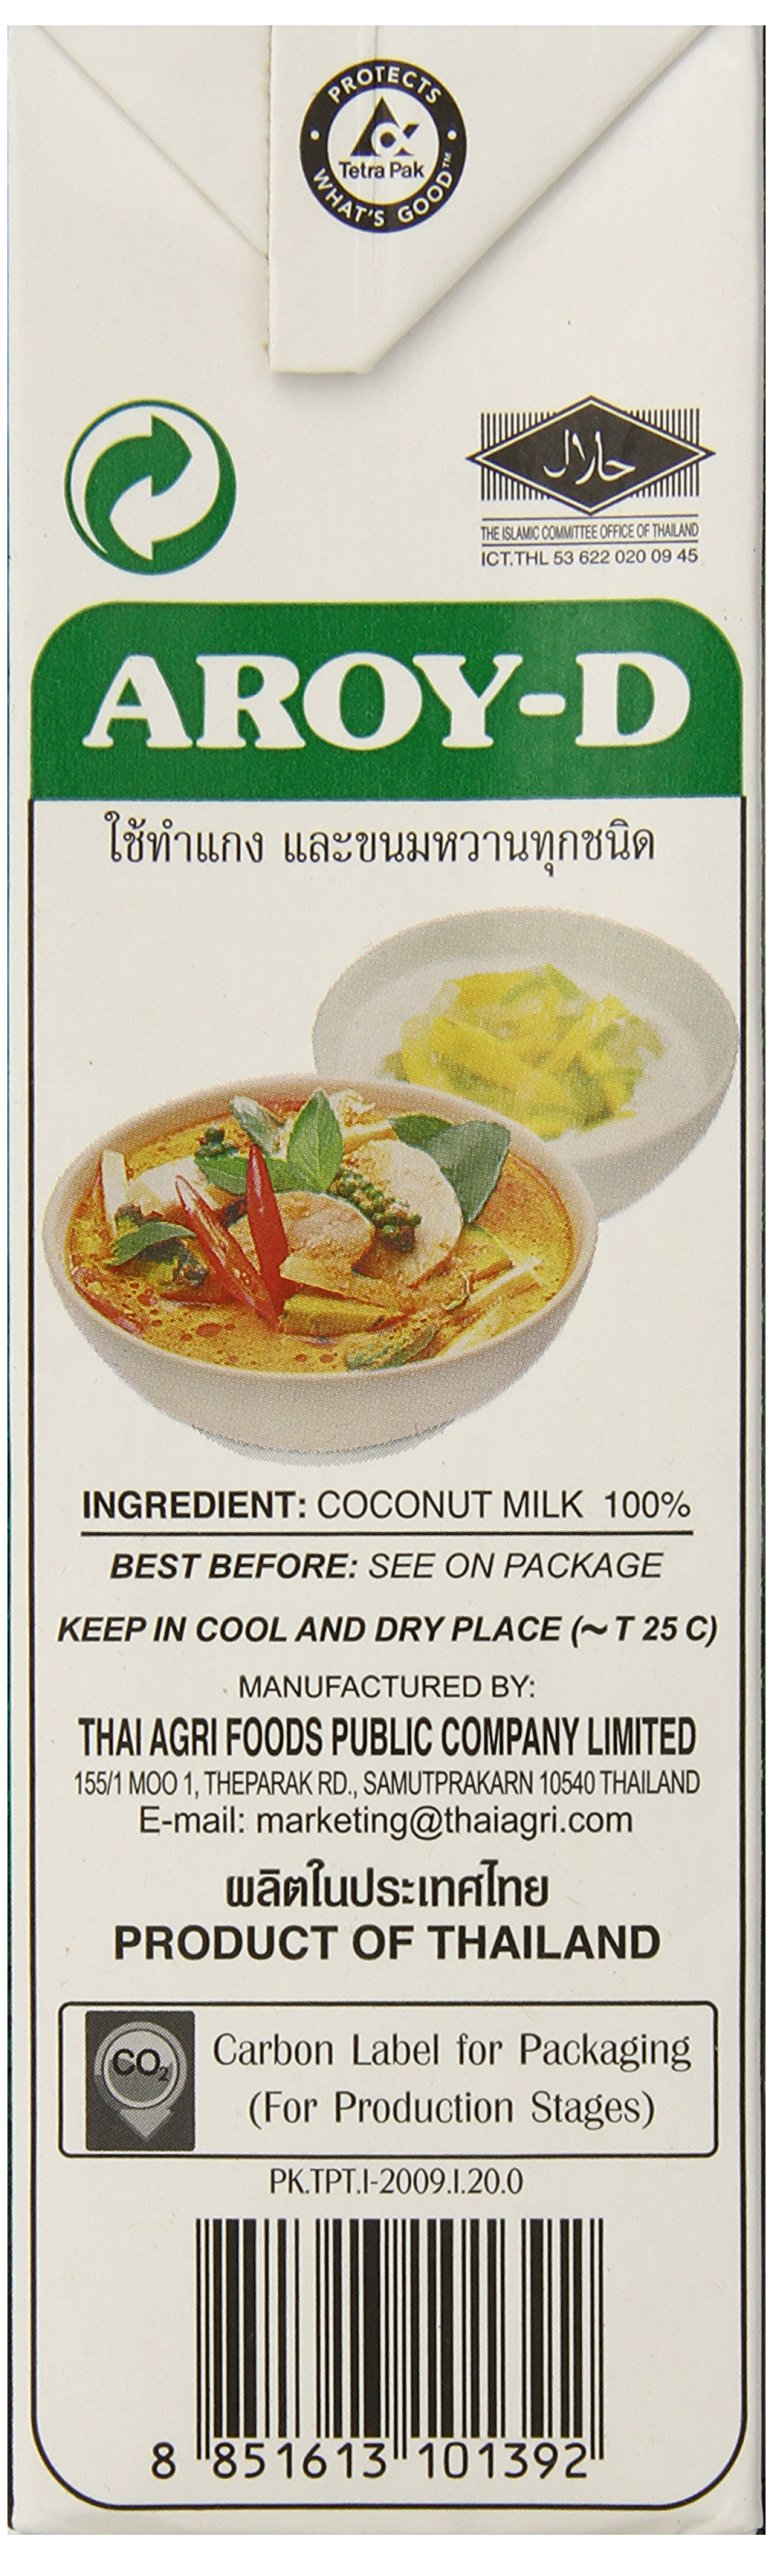 AROY-D 100% Coconut Milk - 33.8 oz packages (3-pack) by Aroy-D (Image #5)